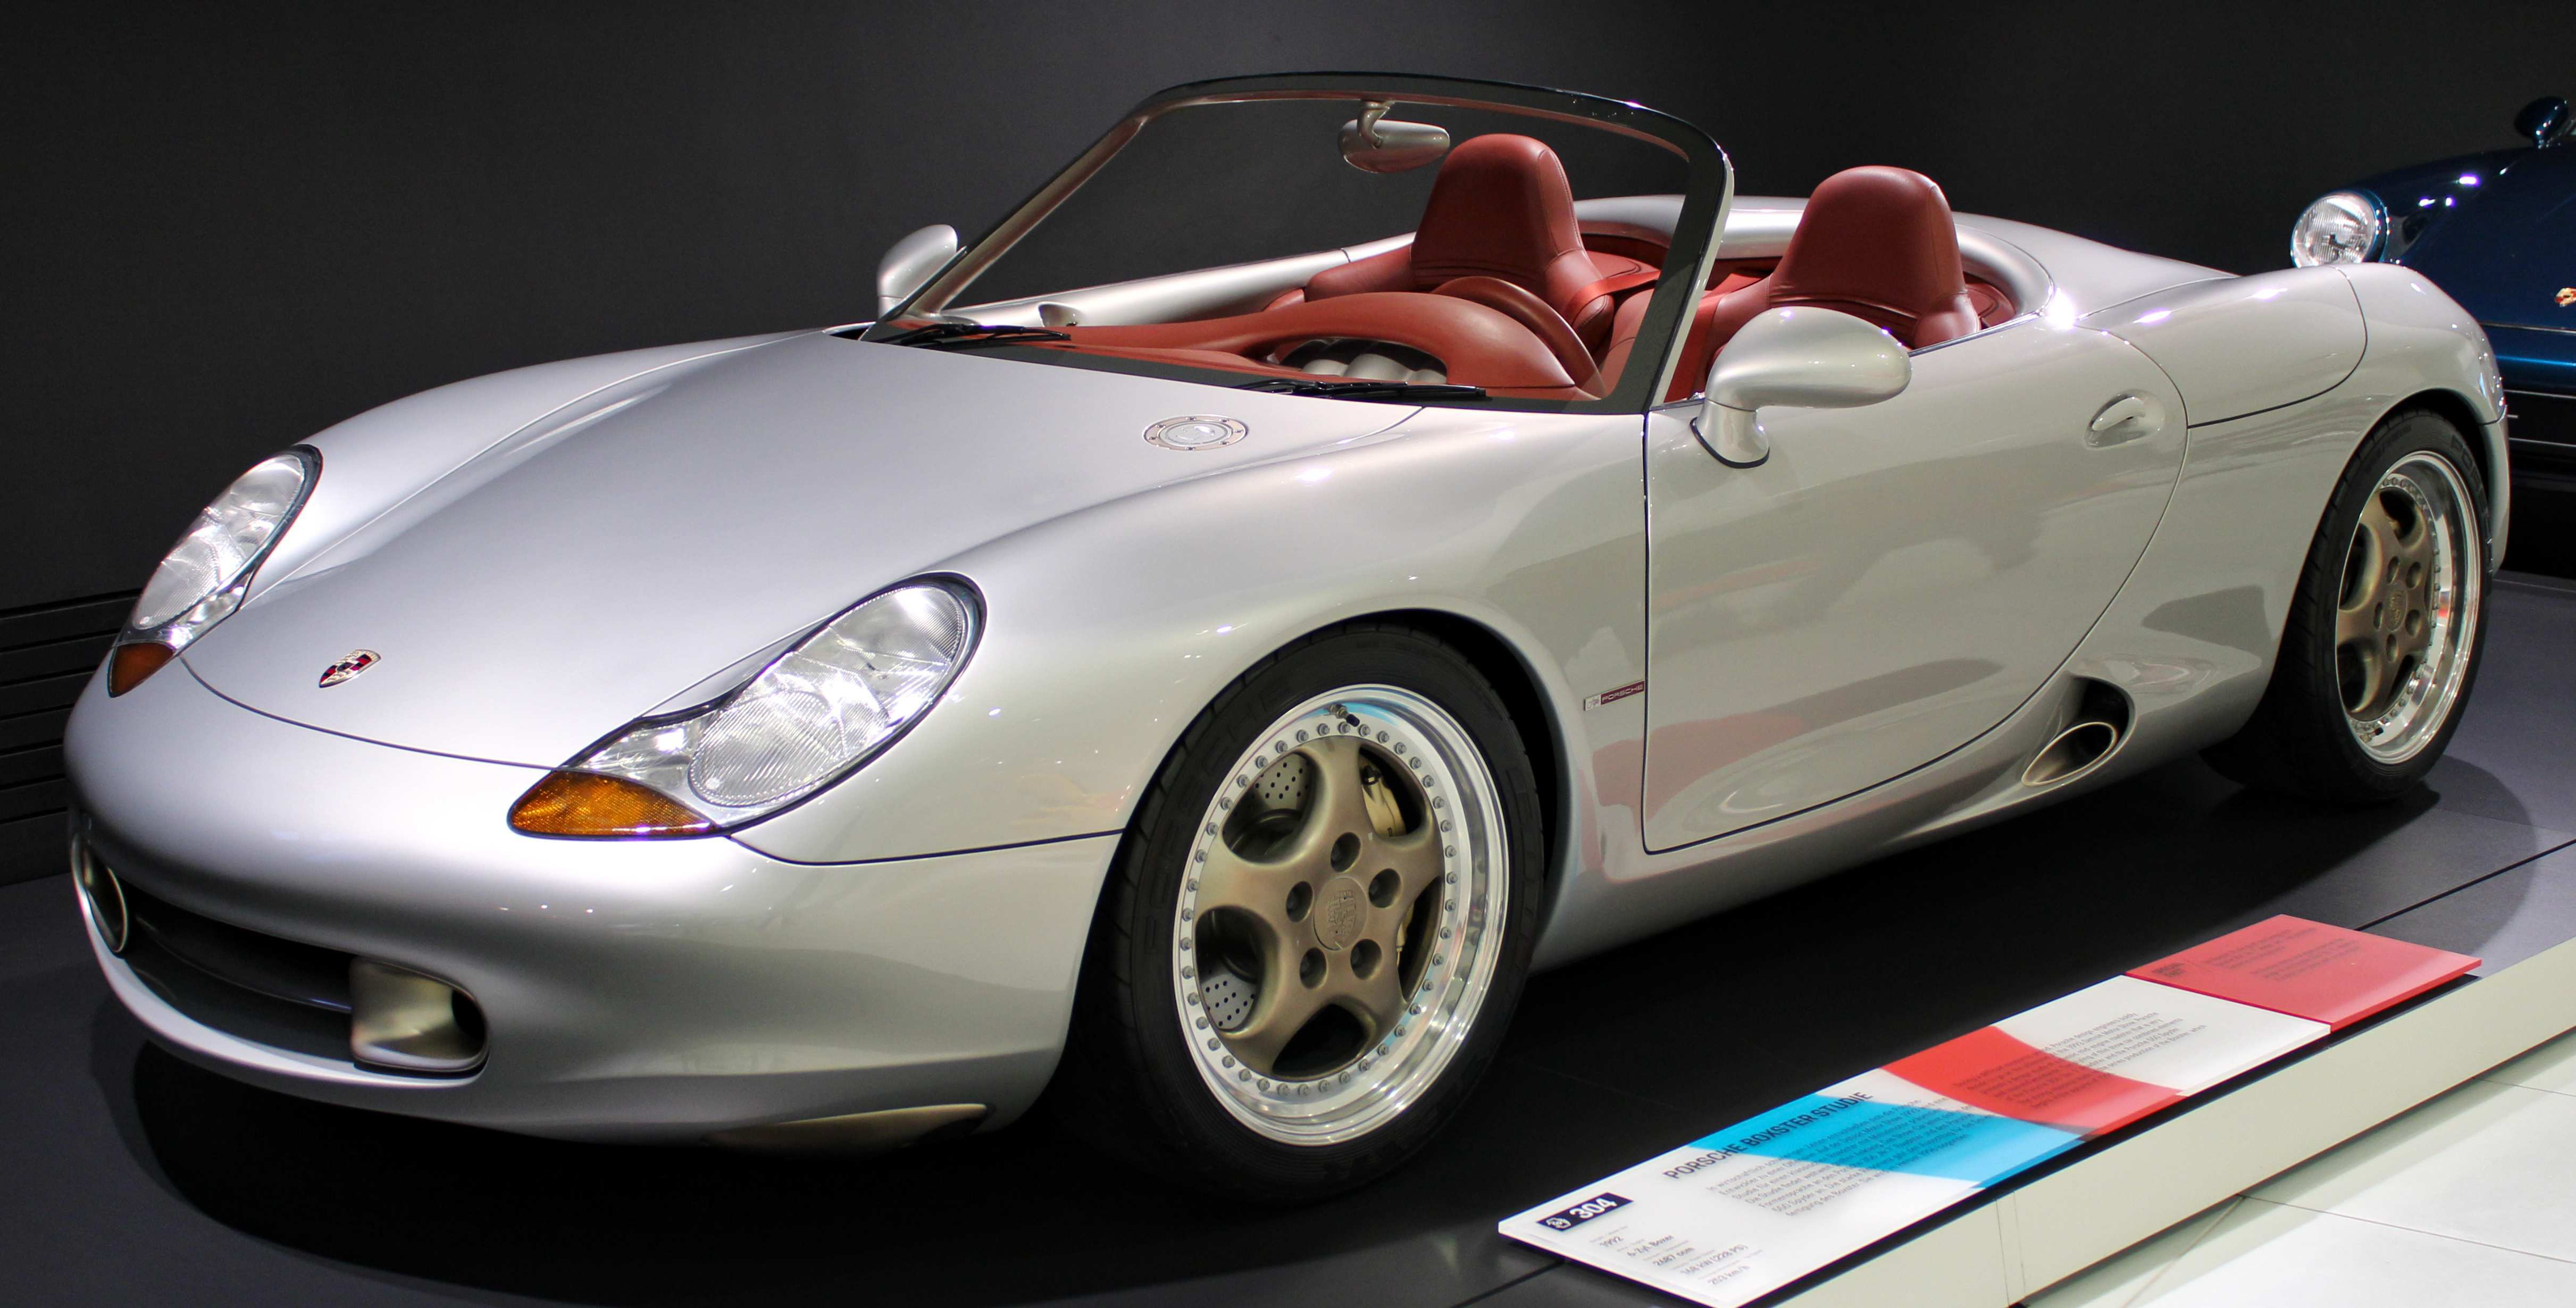 42 Gallery of Porsche Boxster Concept Price for Porsche Boxster Concept